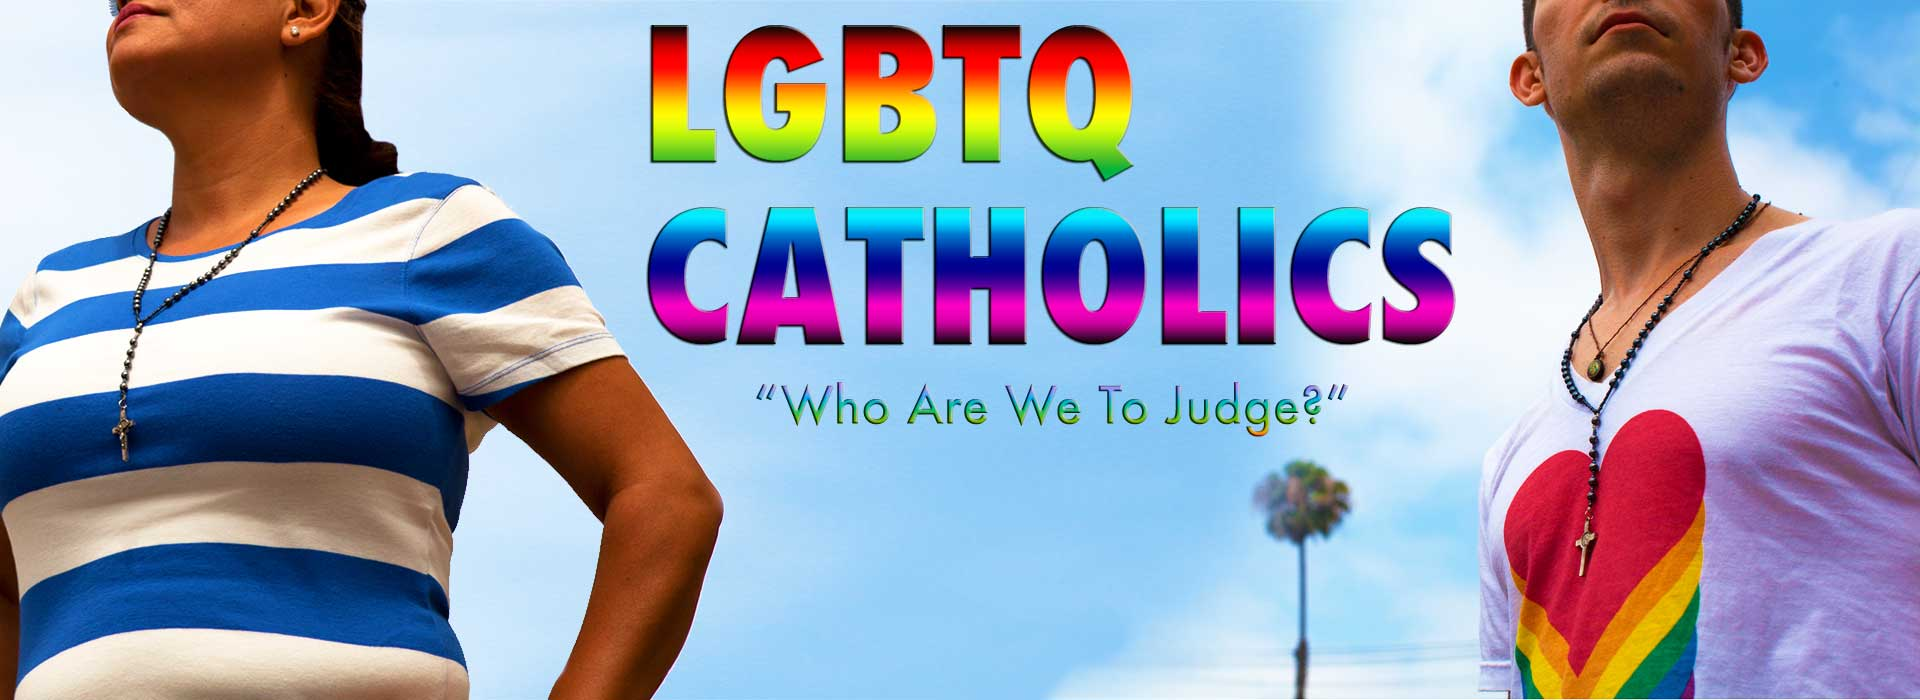 LGBTQ-Catholics-Slider-merged